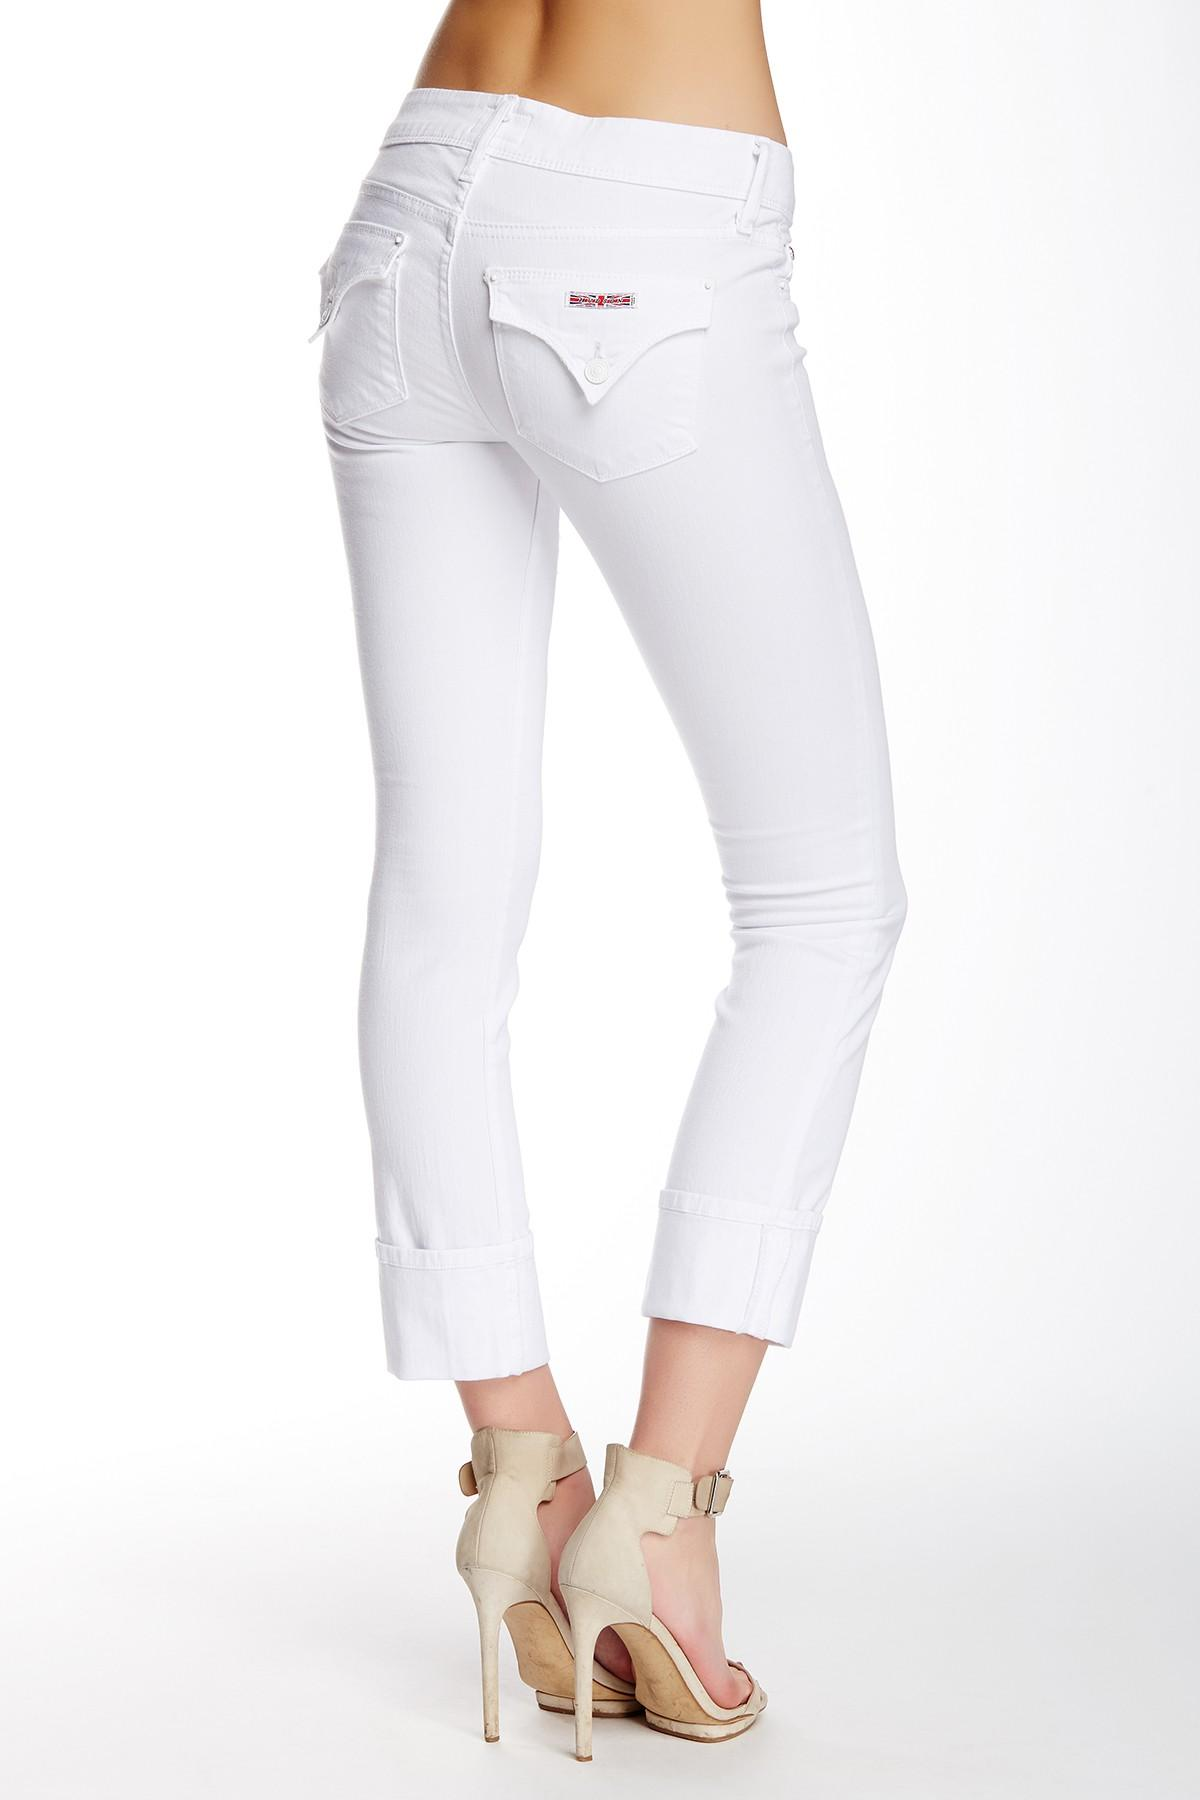 99a26e21fb4 Gallery. Previously sold at: Nordstrom Rack · Women's White Jeans ...